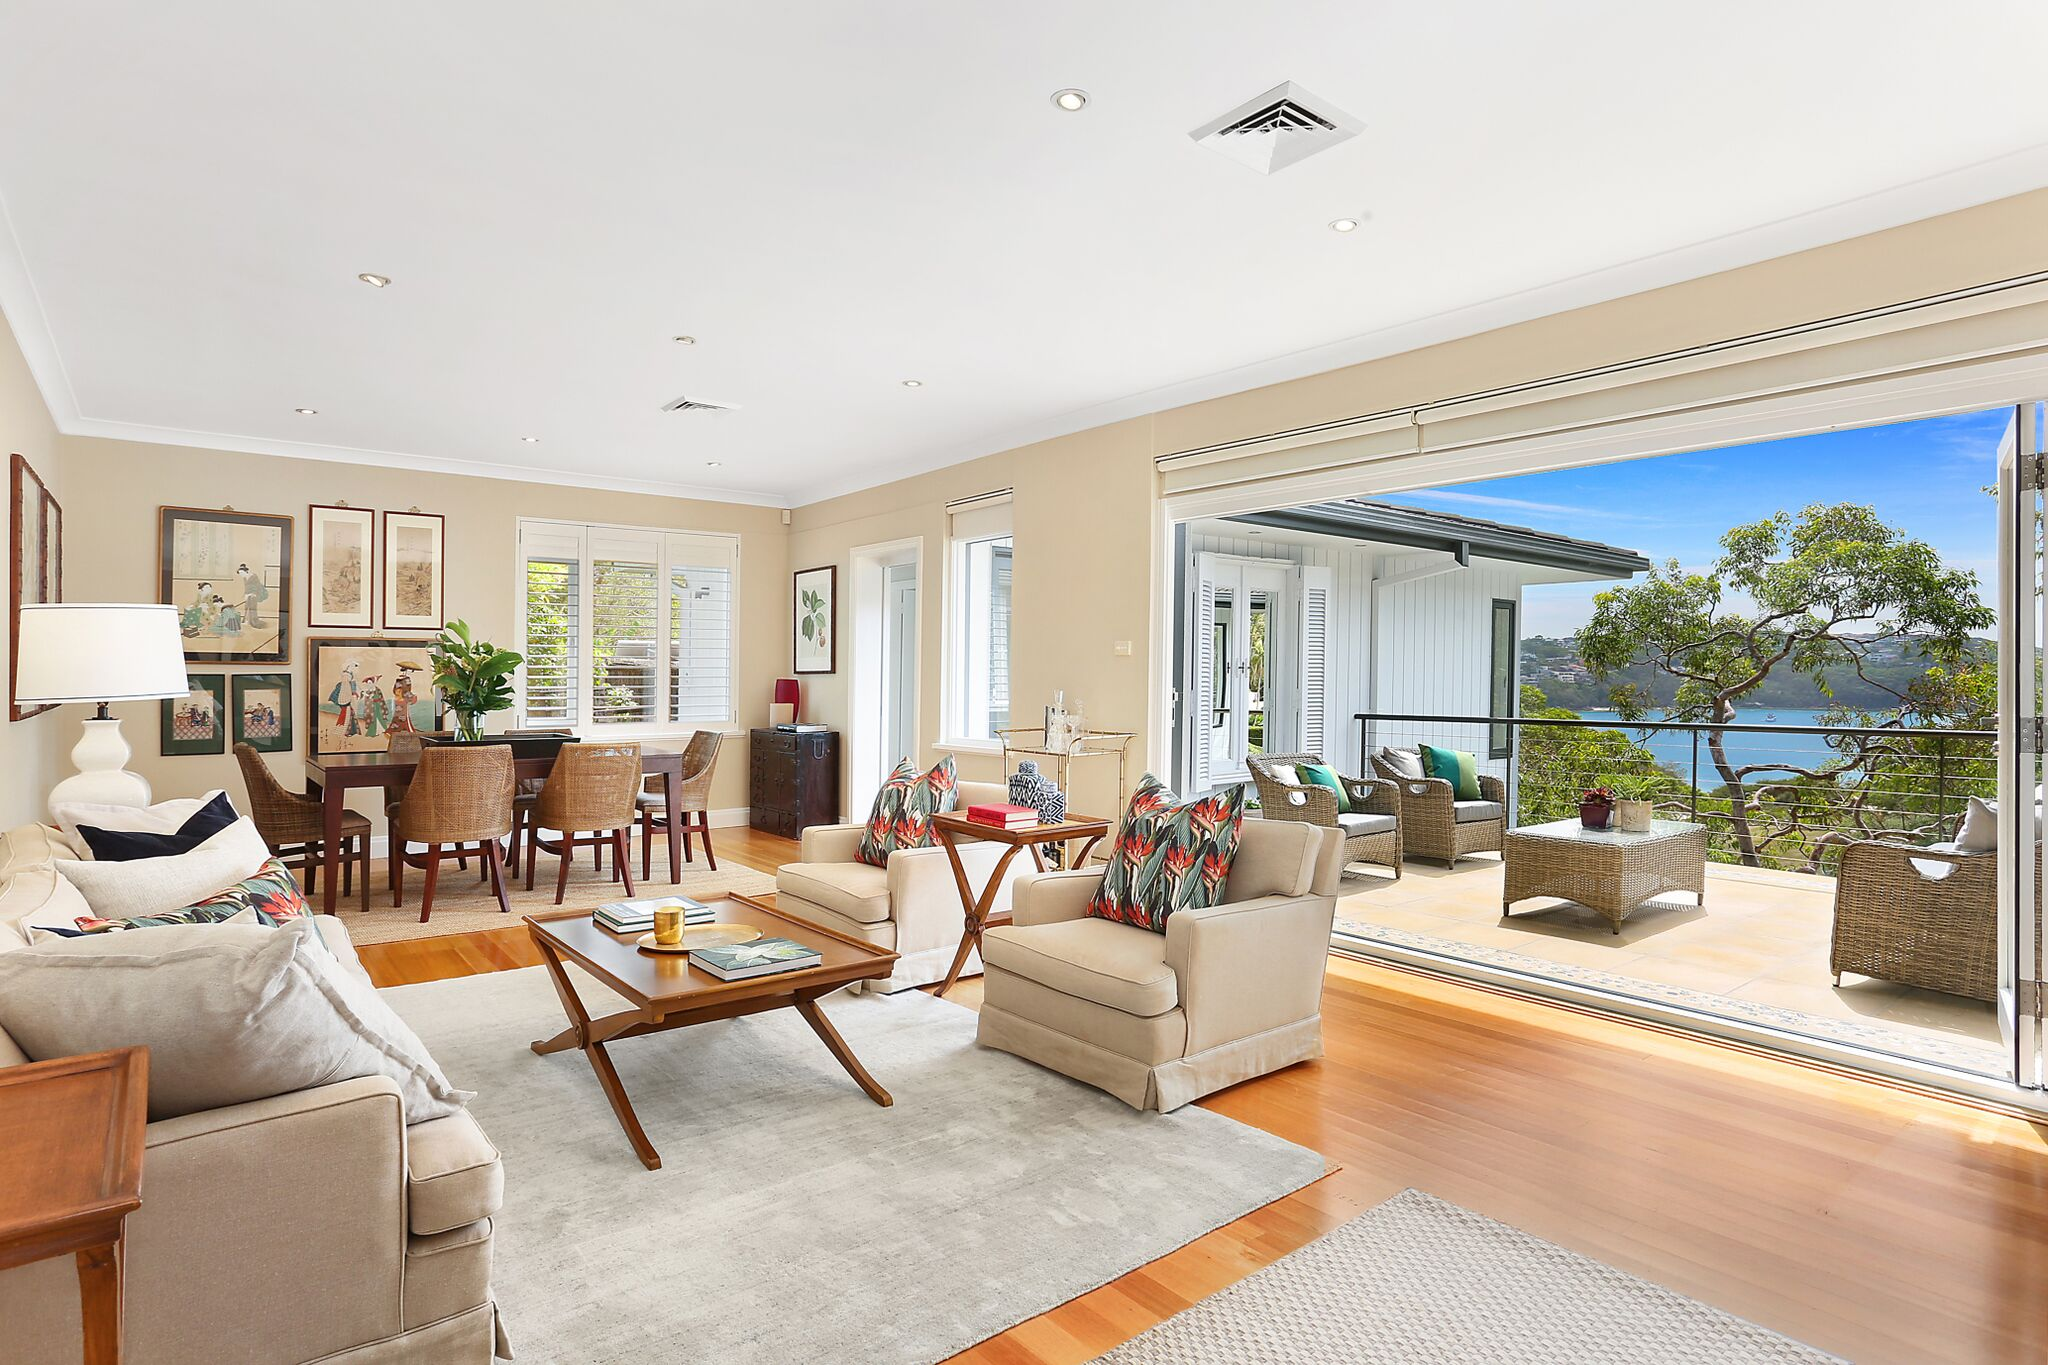 The home is a light filled sanctuary with luxury inclusions. It's perfect for a growing family.